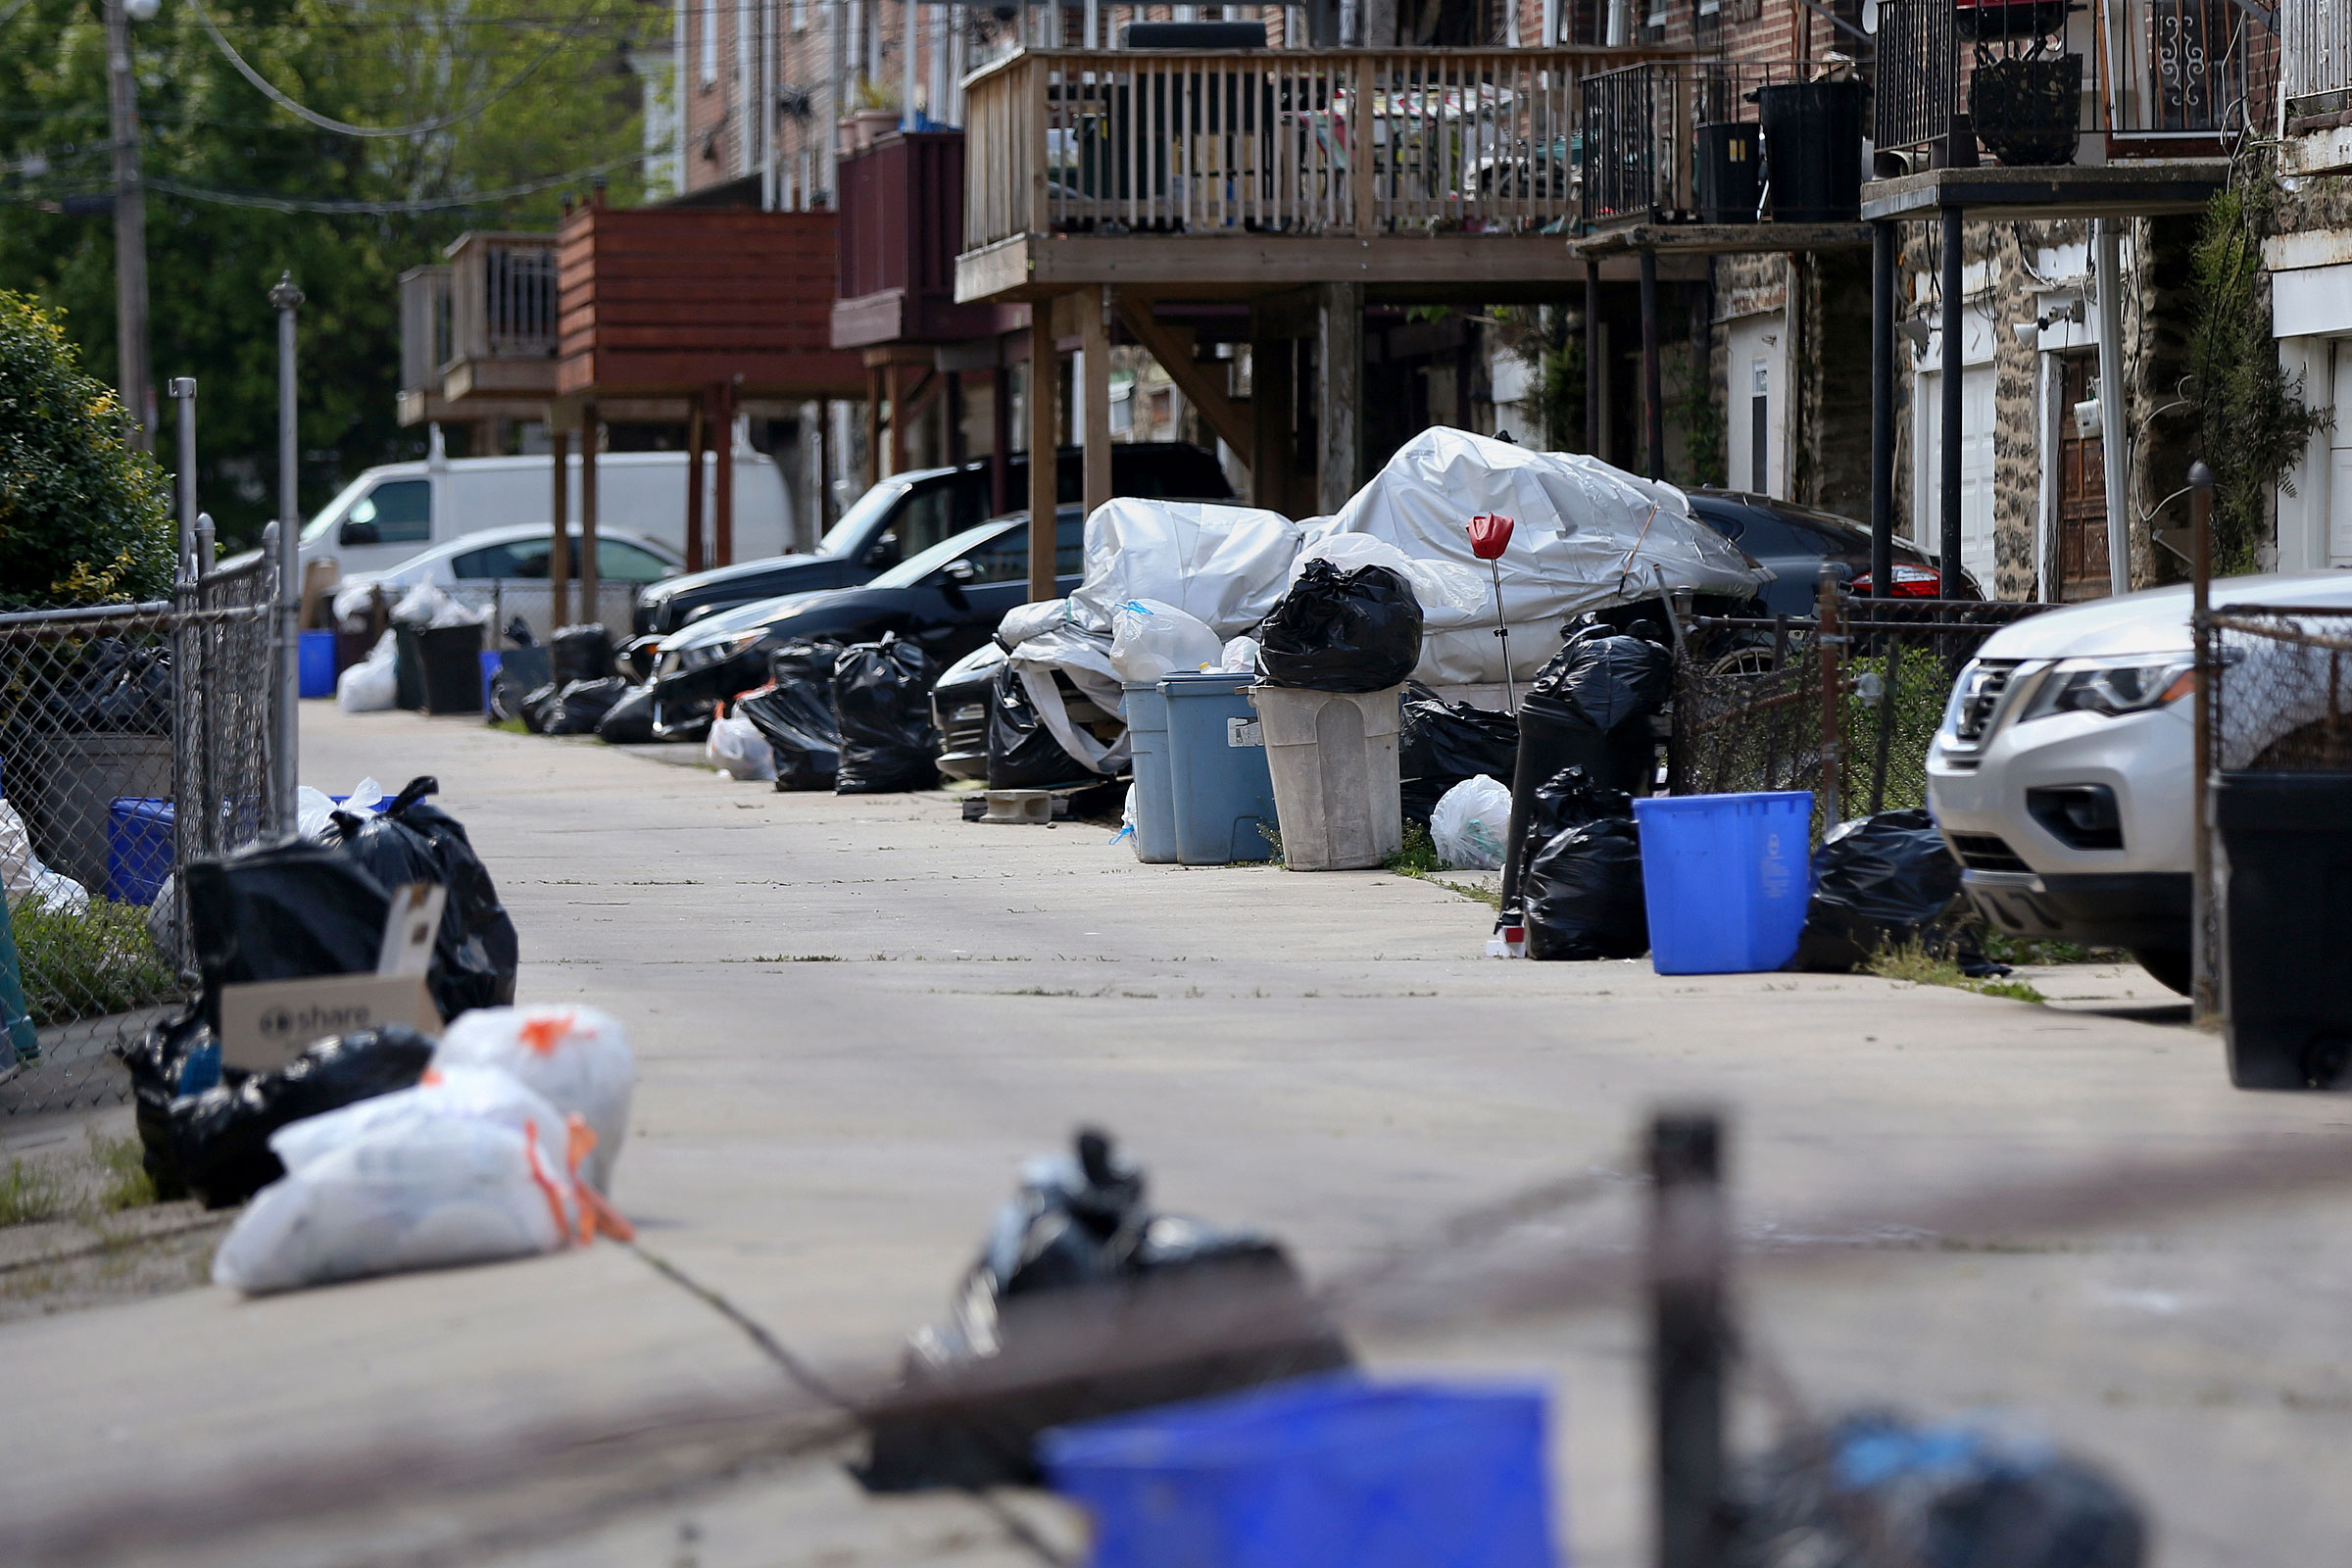 Bags of garbage sit along the street before being picked up in Philadelphia's Ogontz neighborhood on May 13, 2020.